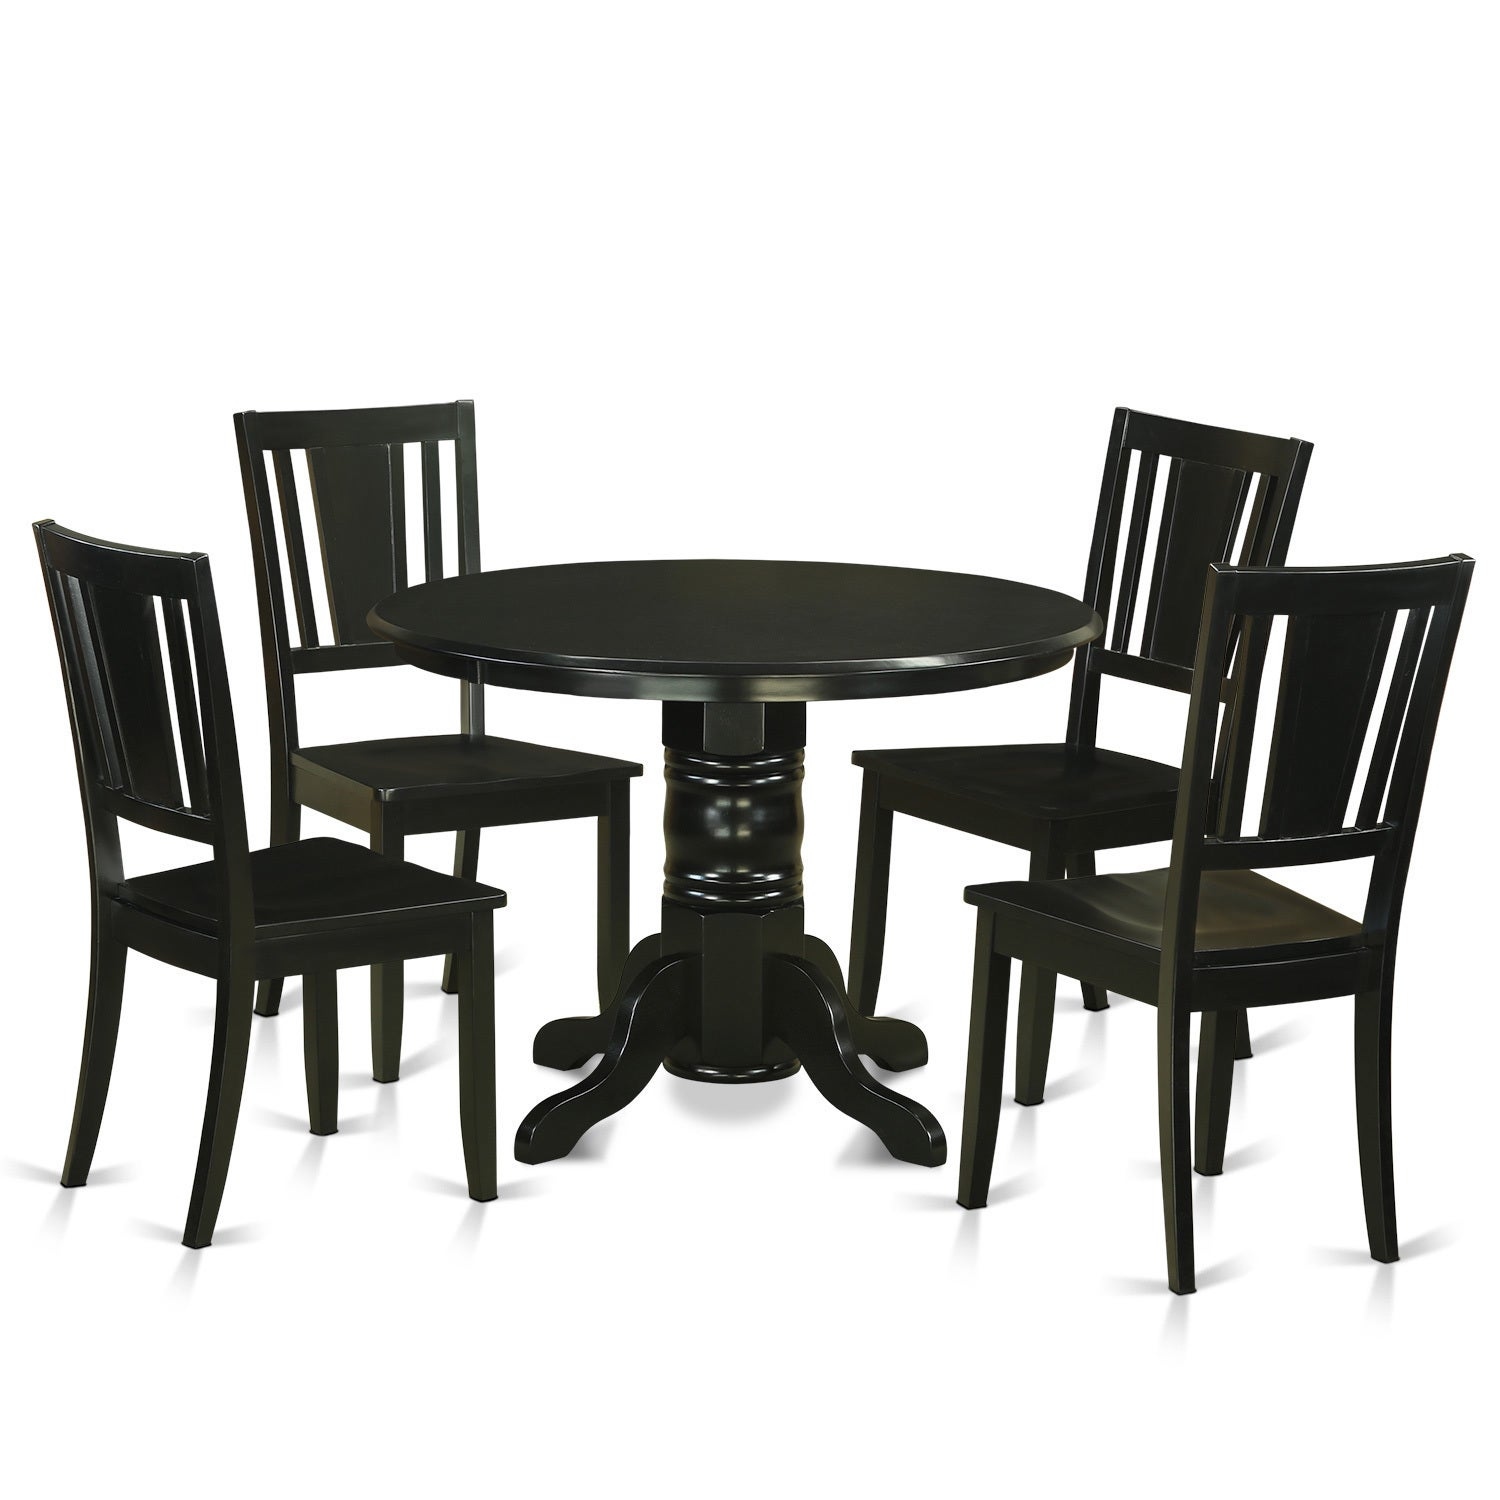 SHDU5-BLK 5-piece Kitchen Nook Dining Set (Wood Seat), Bl...